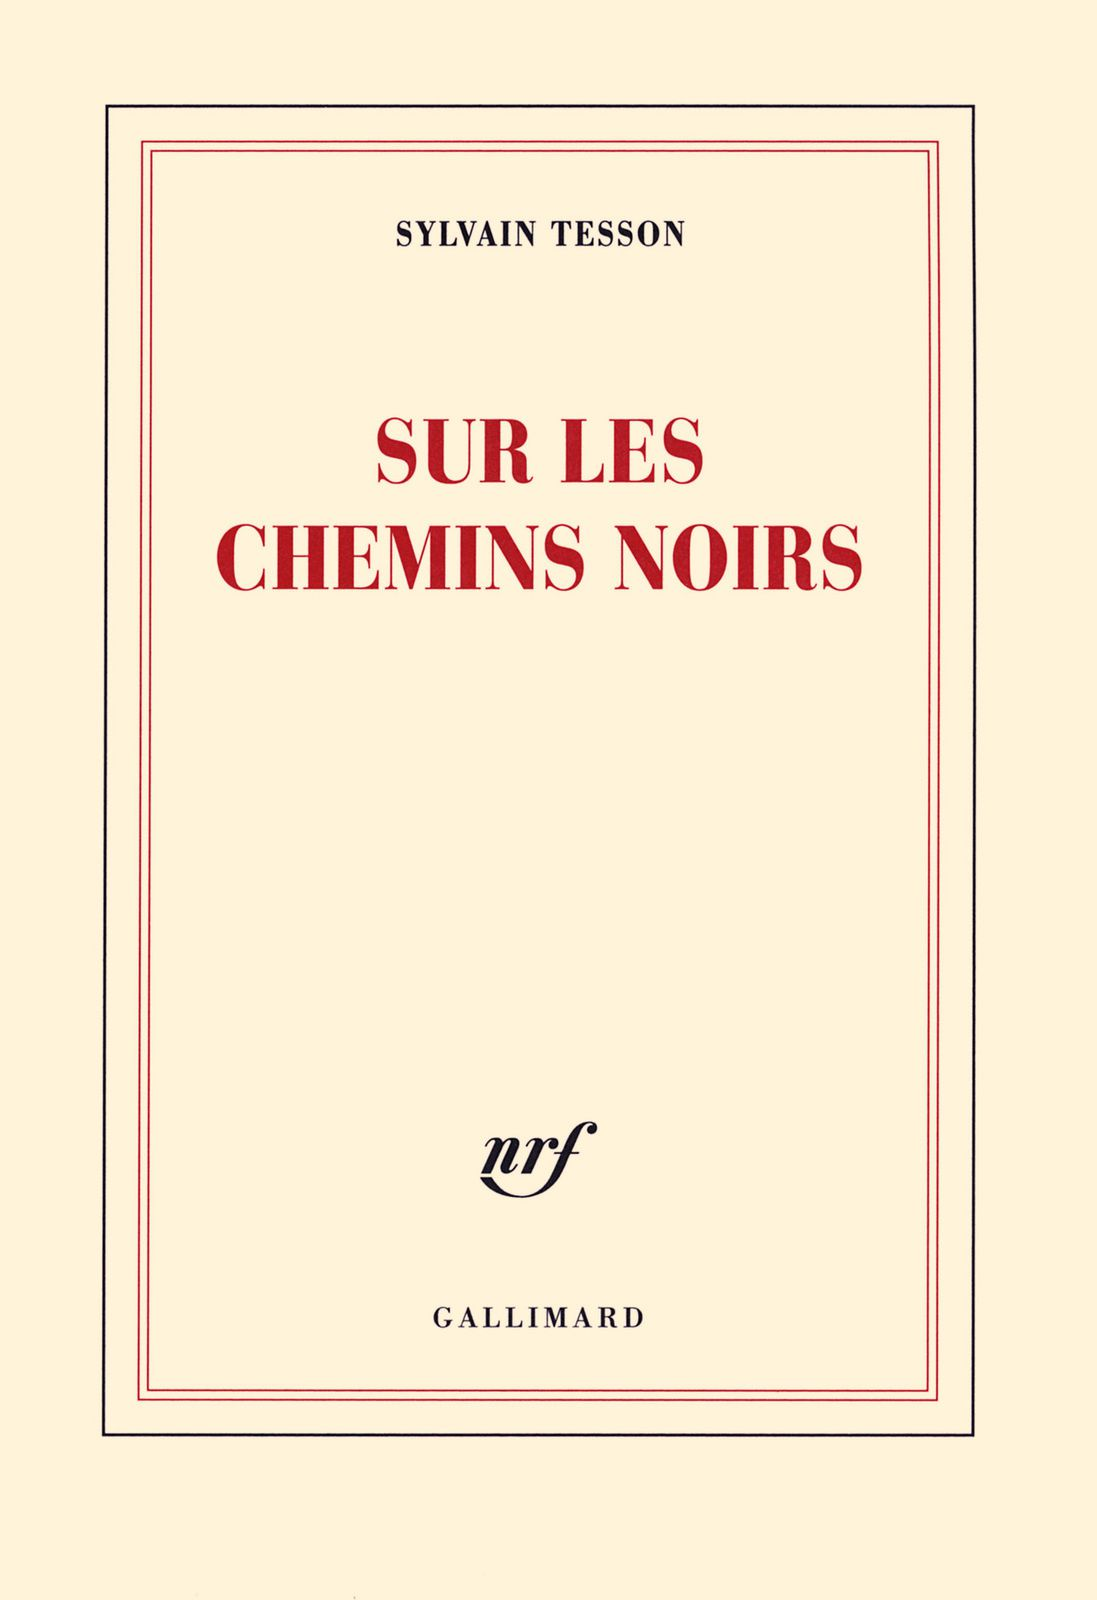 Couverture Gallimard